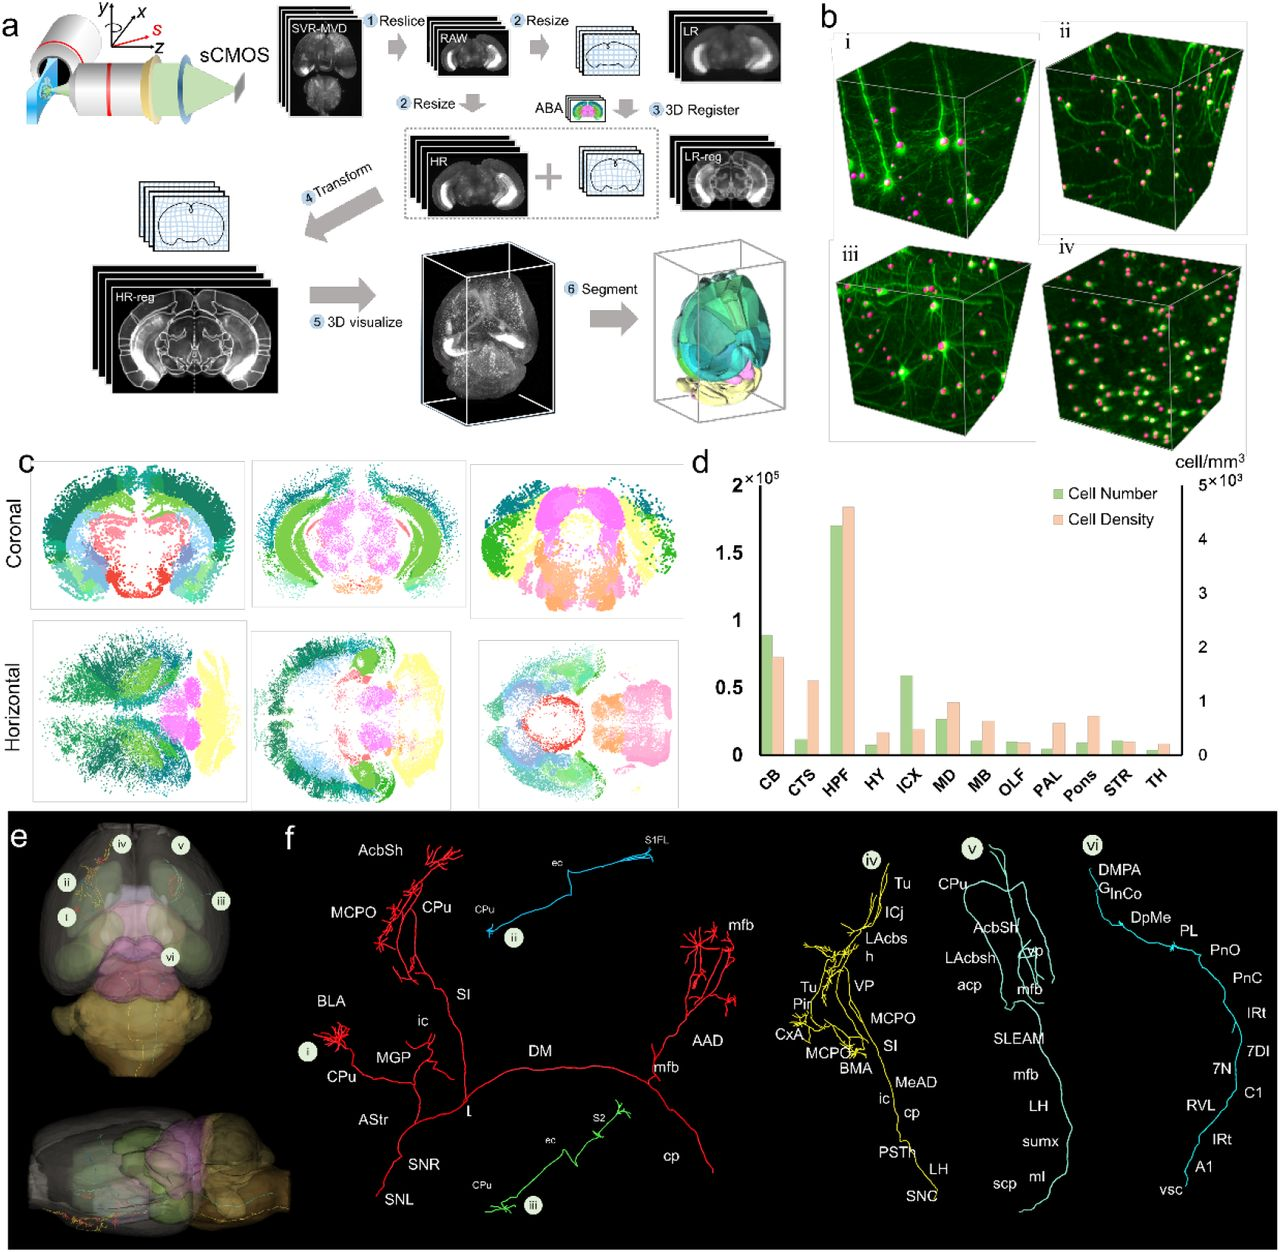 Fast, 3D isotropic imaging of whole mouse brain using multi